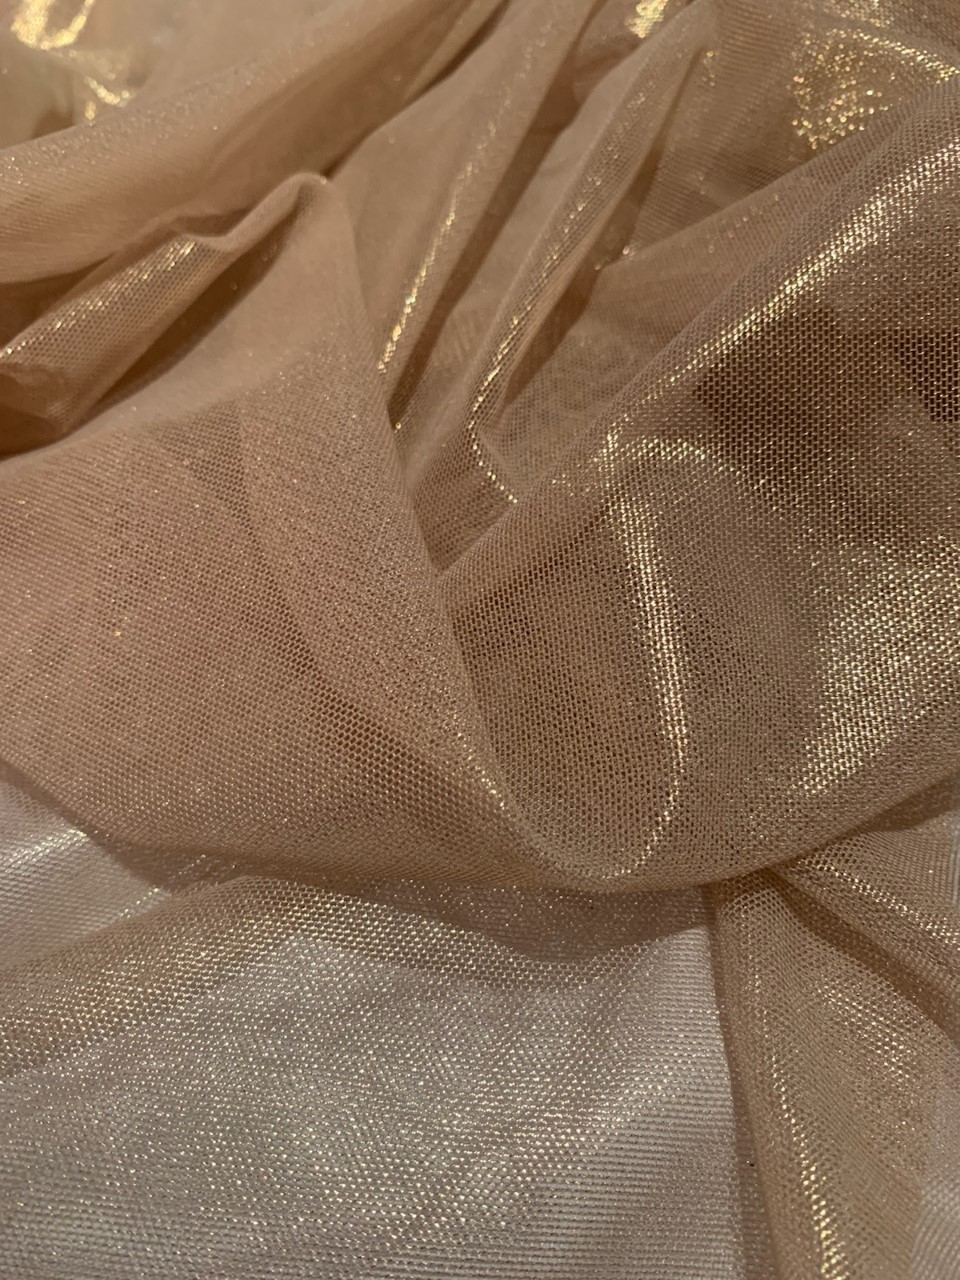 "57"" Nude/Gold Foil Power Mesh Fabric By The Yard"